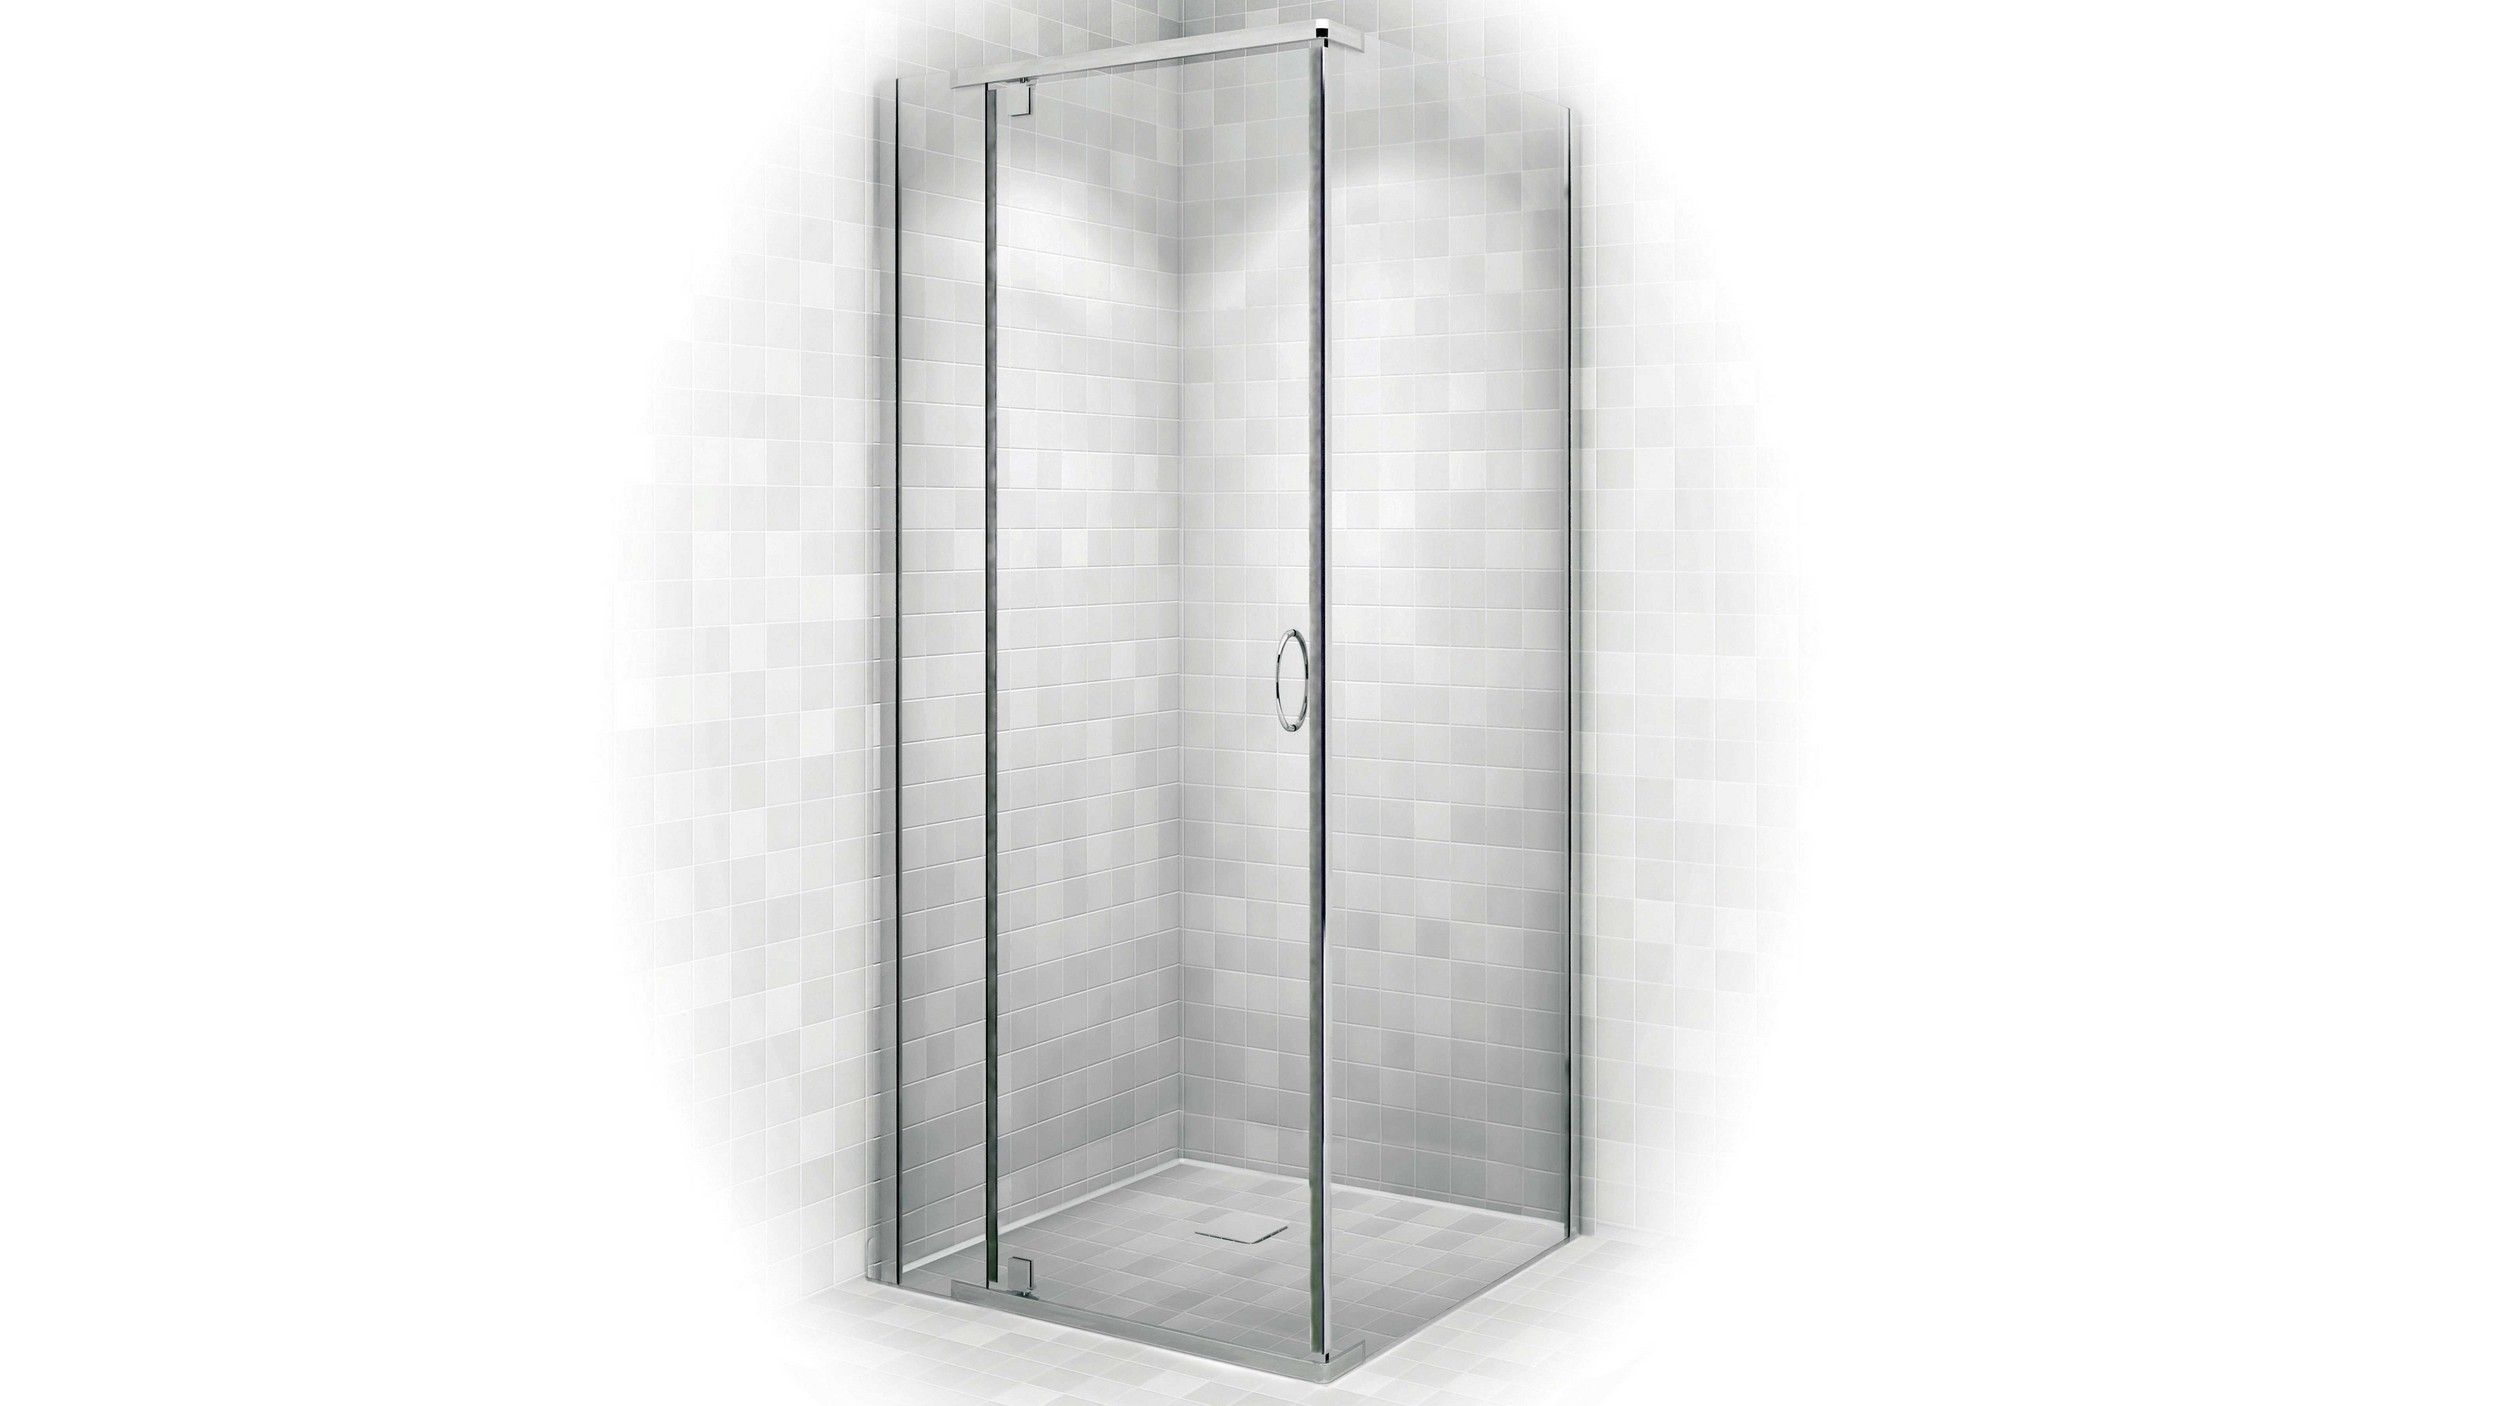 Decina Cascade 900 Chrome Shower Screen | Bathroom | Pinterest ...